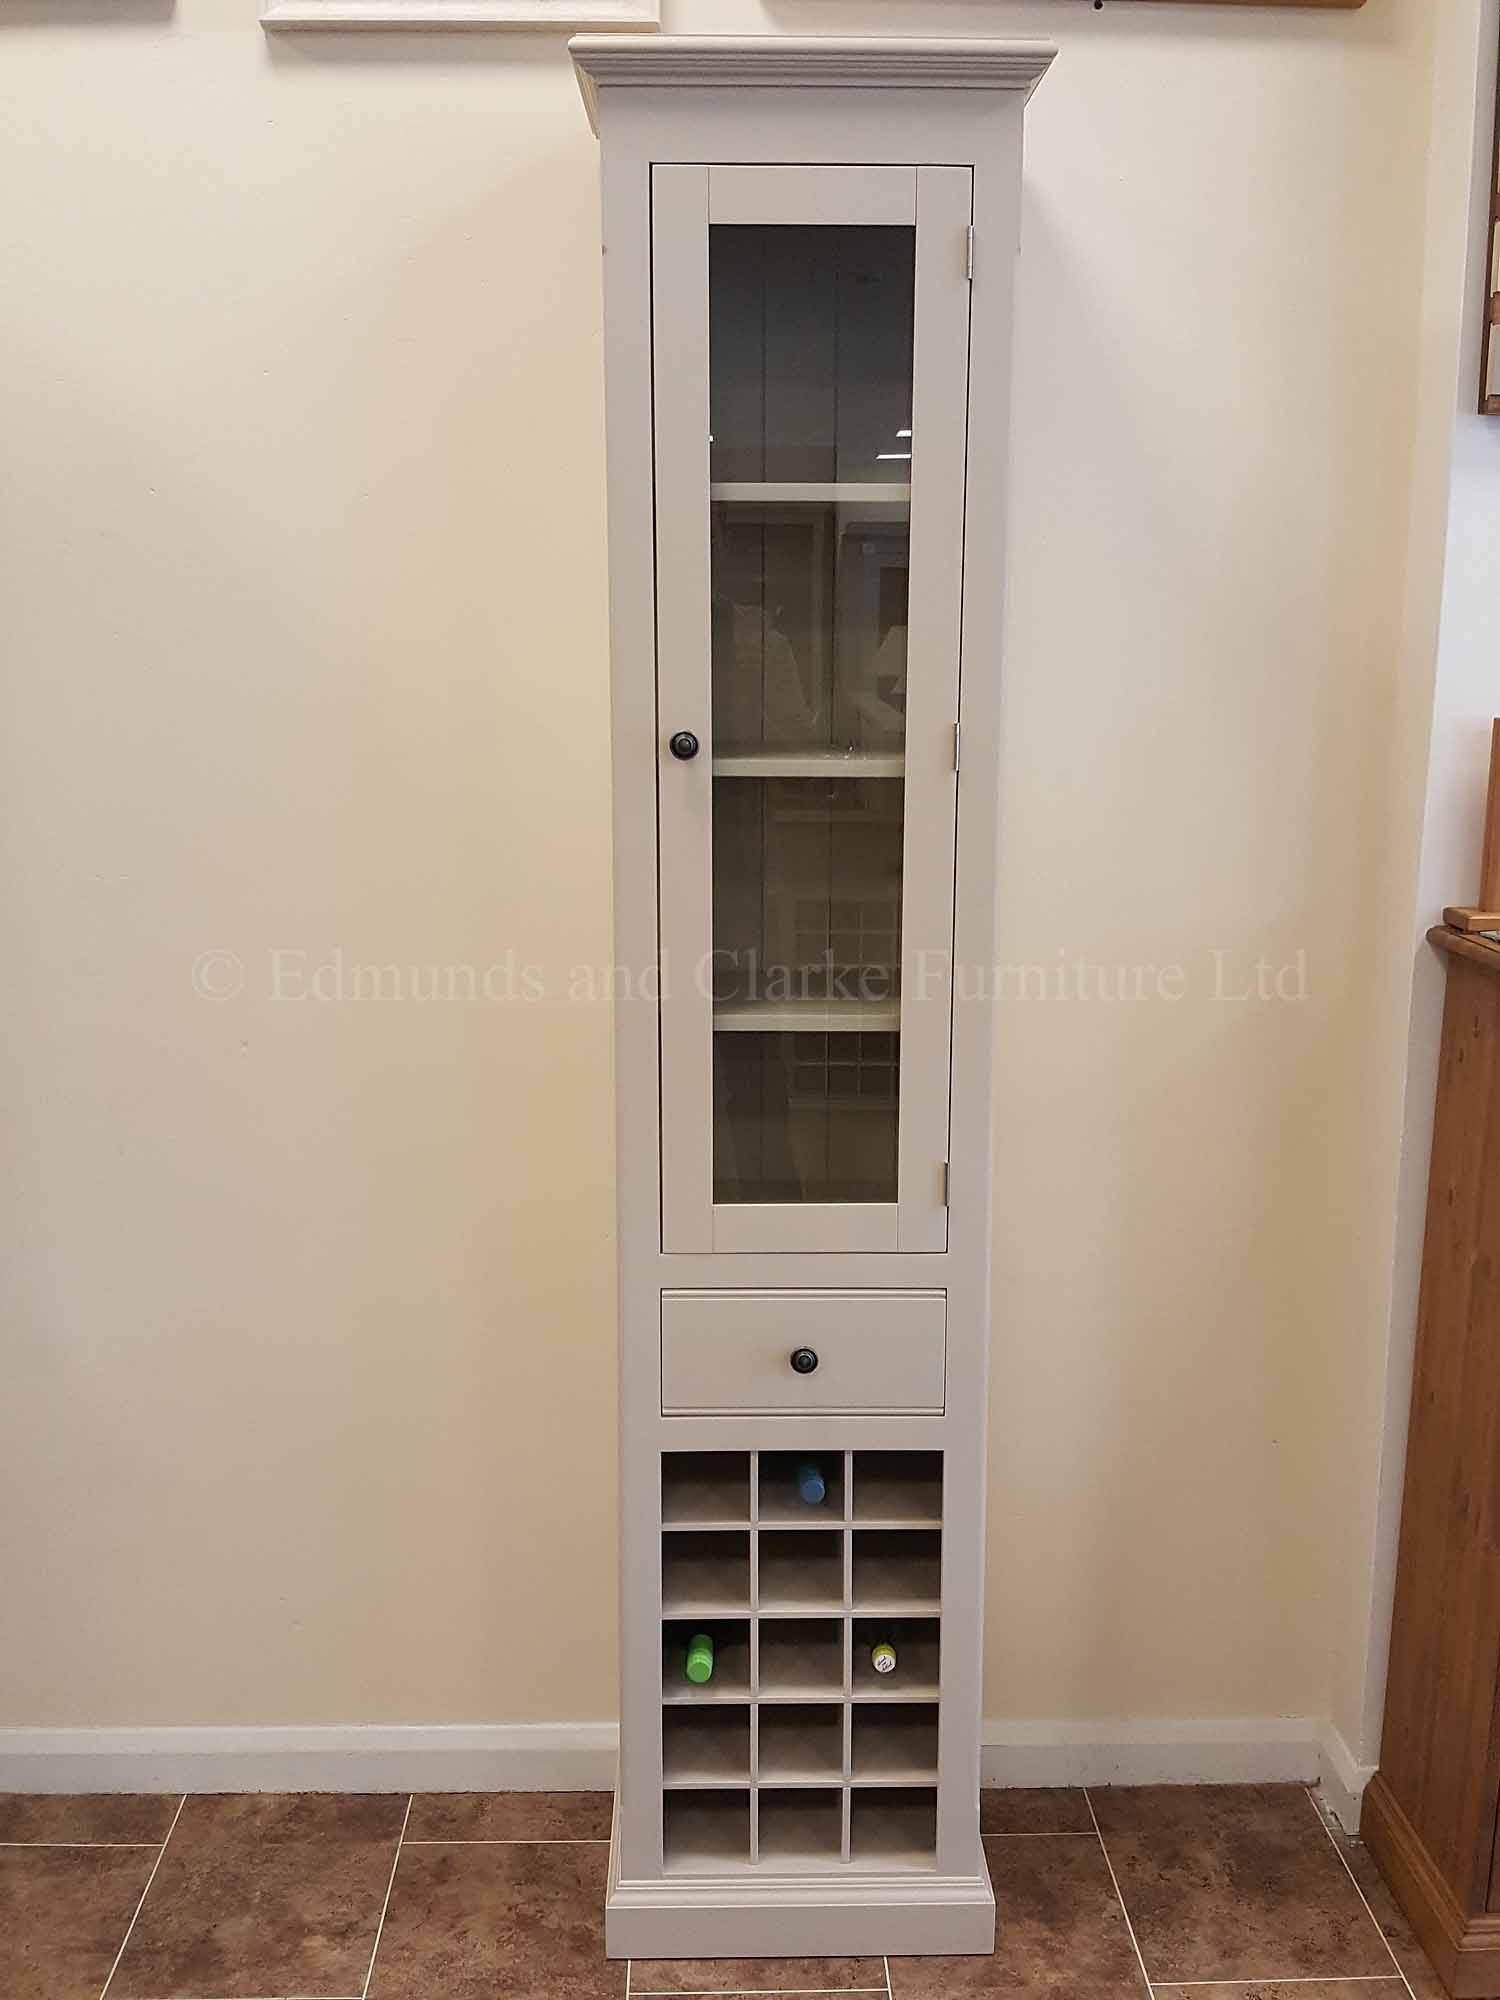 Painted narrow kitchen cupboard with wine rack